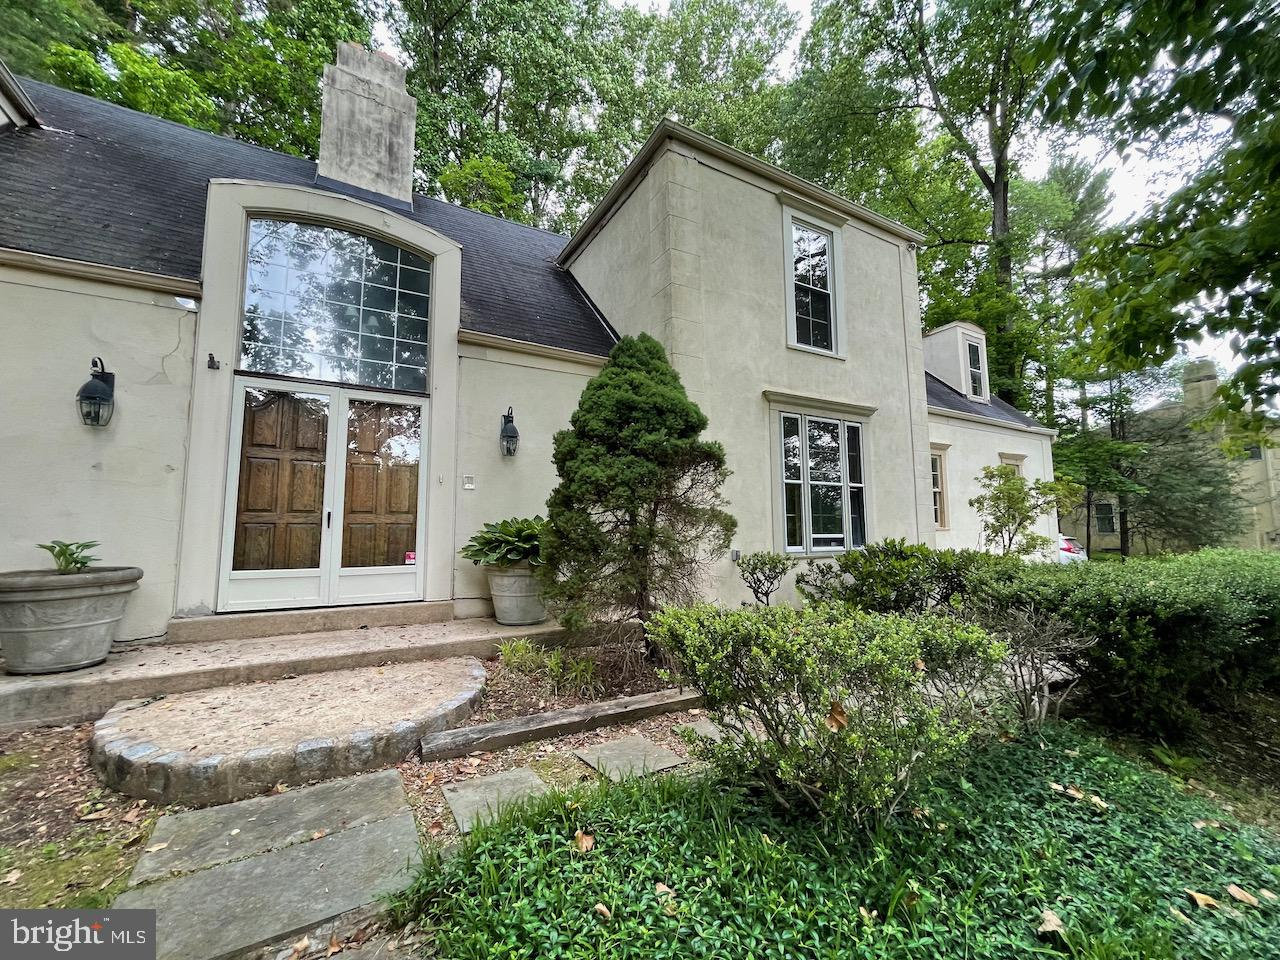 This house is located in Newtown Square and is convenient to Route 3 and Route 476 and waiting to be restored to its once beautiful condition.  This is a 4 bedroom,  2.5 bath french country colonial-style house nestled in the hillside on Hansell Road.  There is an open flow to this contemporary floor plan which has hardwood floors throughout the first floor as well as upstairs in three of the bedrooms.  This house needs some attention to the details that once made it a beautiful home but worth the effort.  Visitors entering through the front door are greeted with a two-story foyer and ceramic tile floors, there is a large spacious formal dining room to the right and a large spacious living room to the left with a fireplace and doors leading out to the enclosed porch and backyard.   The kitchen was once updated with Corian countertops but needs a fresh approach to the fine details fitting for this type of home.   There is an informal great room with its own fireplace, built-in cabinets, and a  vaulted cathedral ceiling that exposes the second-floor landing separating the master bedroom from the three other bedrooms.  The master bedroom has a walk-in closet and its own full bath while the other three bedrooms on the opposite side of the landing area have their own hall full bath.  The backyard is secluded from neighboring properties by tall mature trees and has a flagstone patio and an enclosed porch.   Newtown Square is a suburban setting convenient to the amenities of modern life in and around the Philadelphia area.  Schedule your showing today and get to work on making this property your new home? This property is now active in an online auction. All offers must be submitted through the property's listing page. The sale will be subject to a 5% buyer's premium pursuant to the Auction Terms and Conditions (minimums may apply). All auction bids will be processed subject to seller approval.